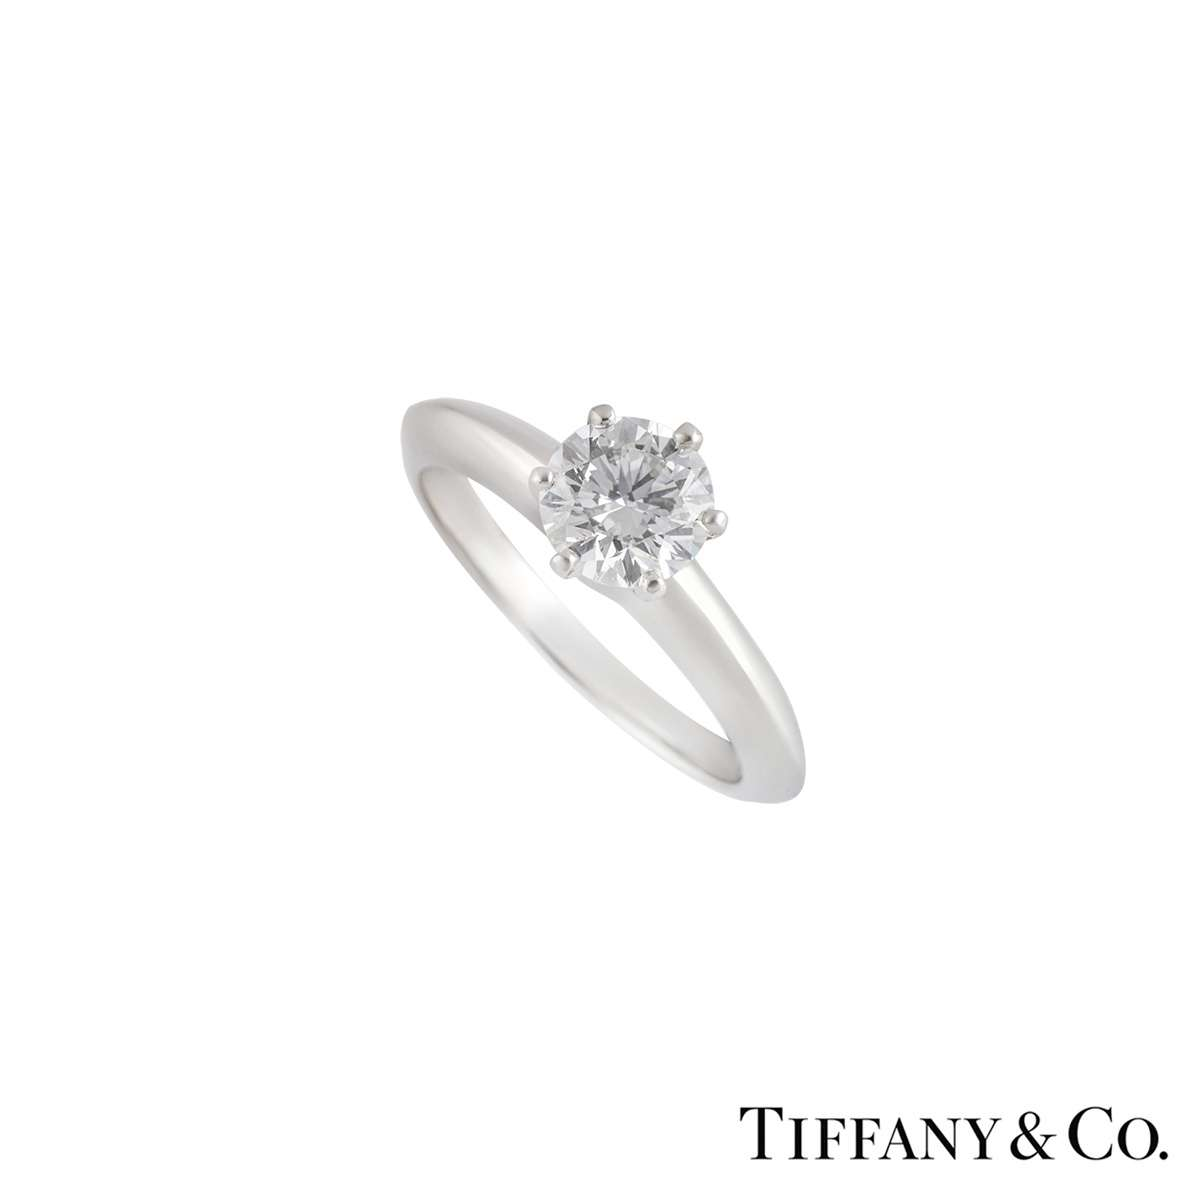 Tiffany & Co. Platinum Diamond Setting Band Ring 0.74ct I/VS2